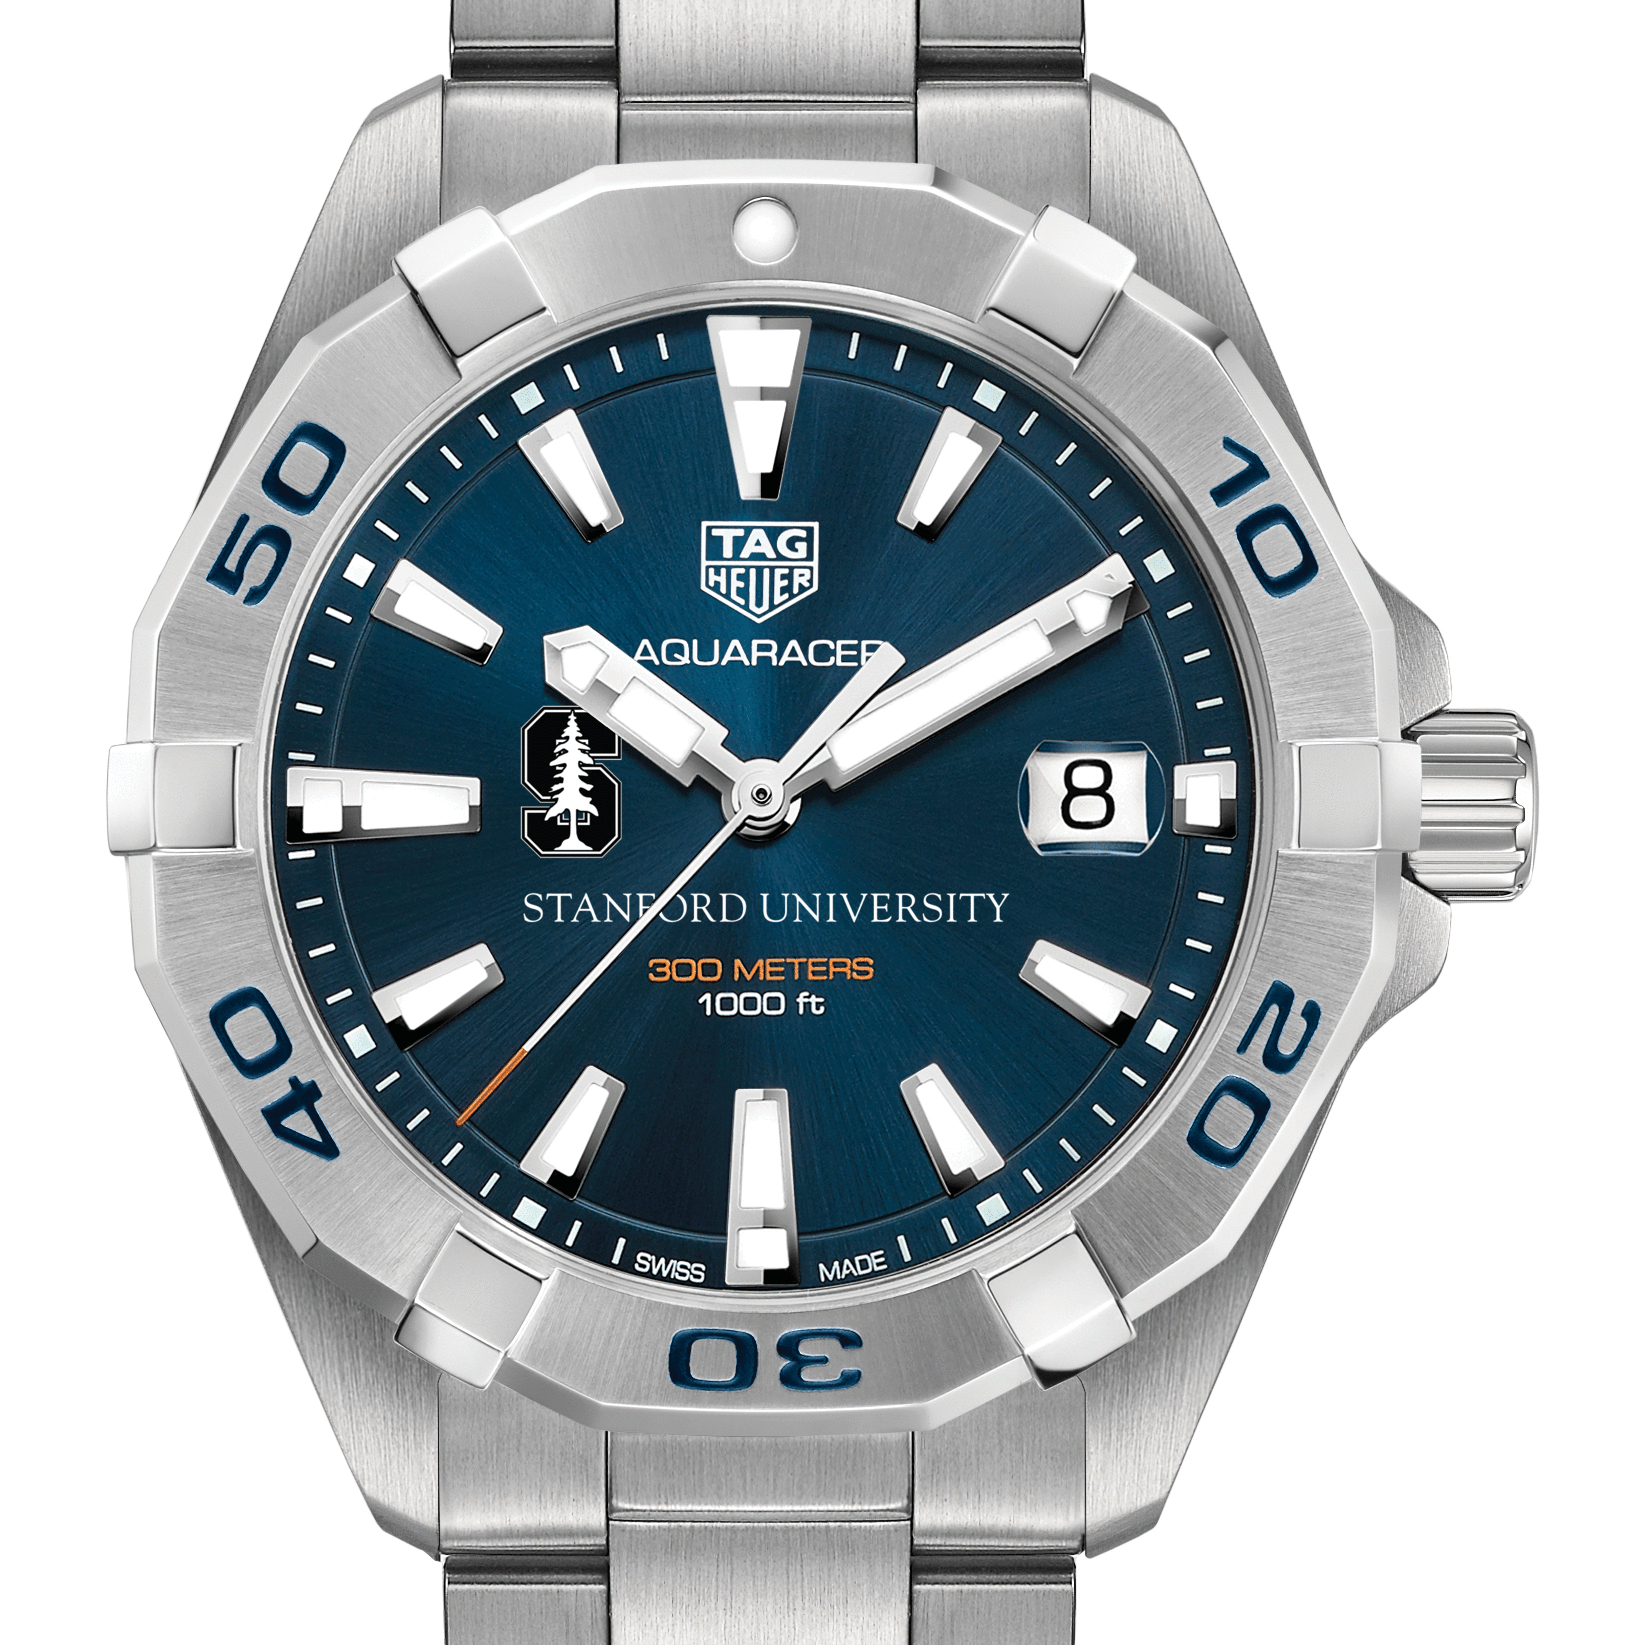 Stanford University Men's TAG Heuer Steel Aquaracer with Blue Dial